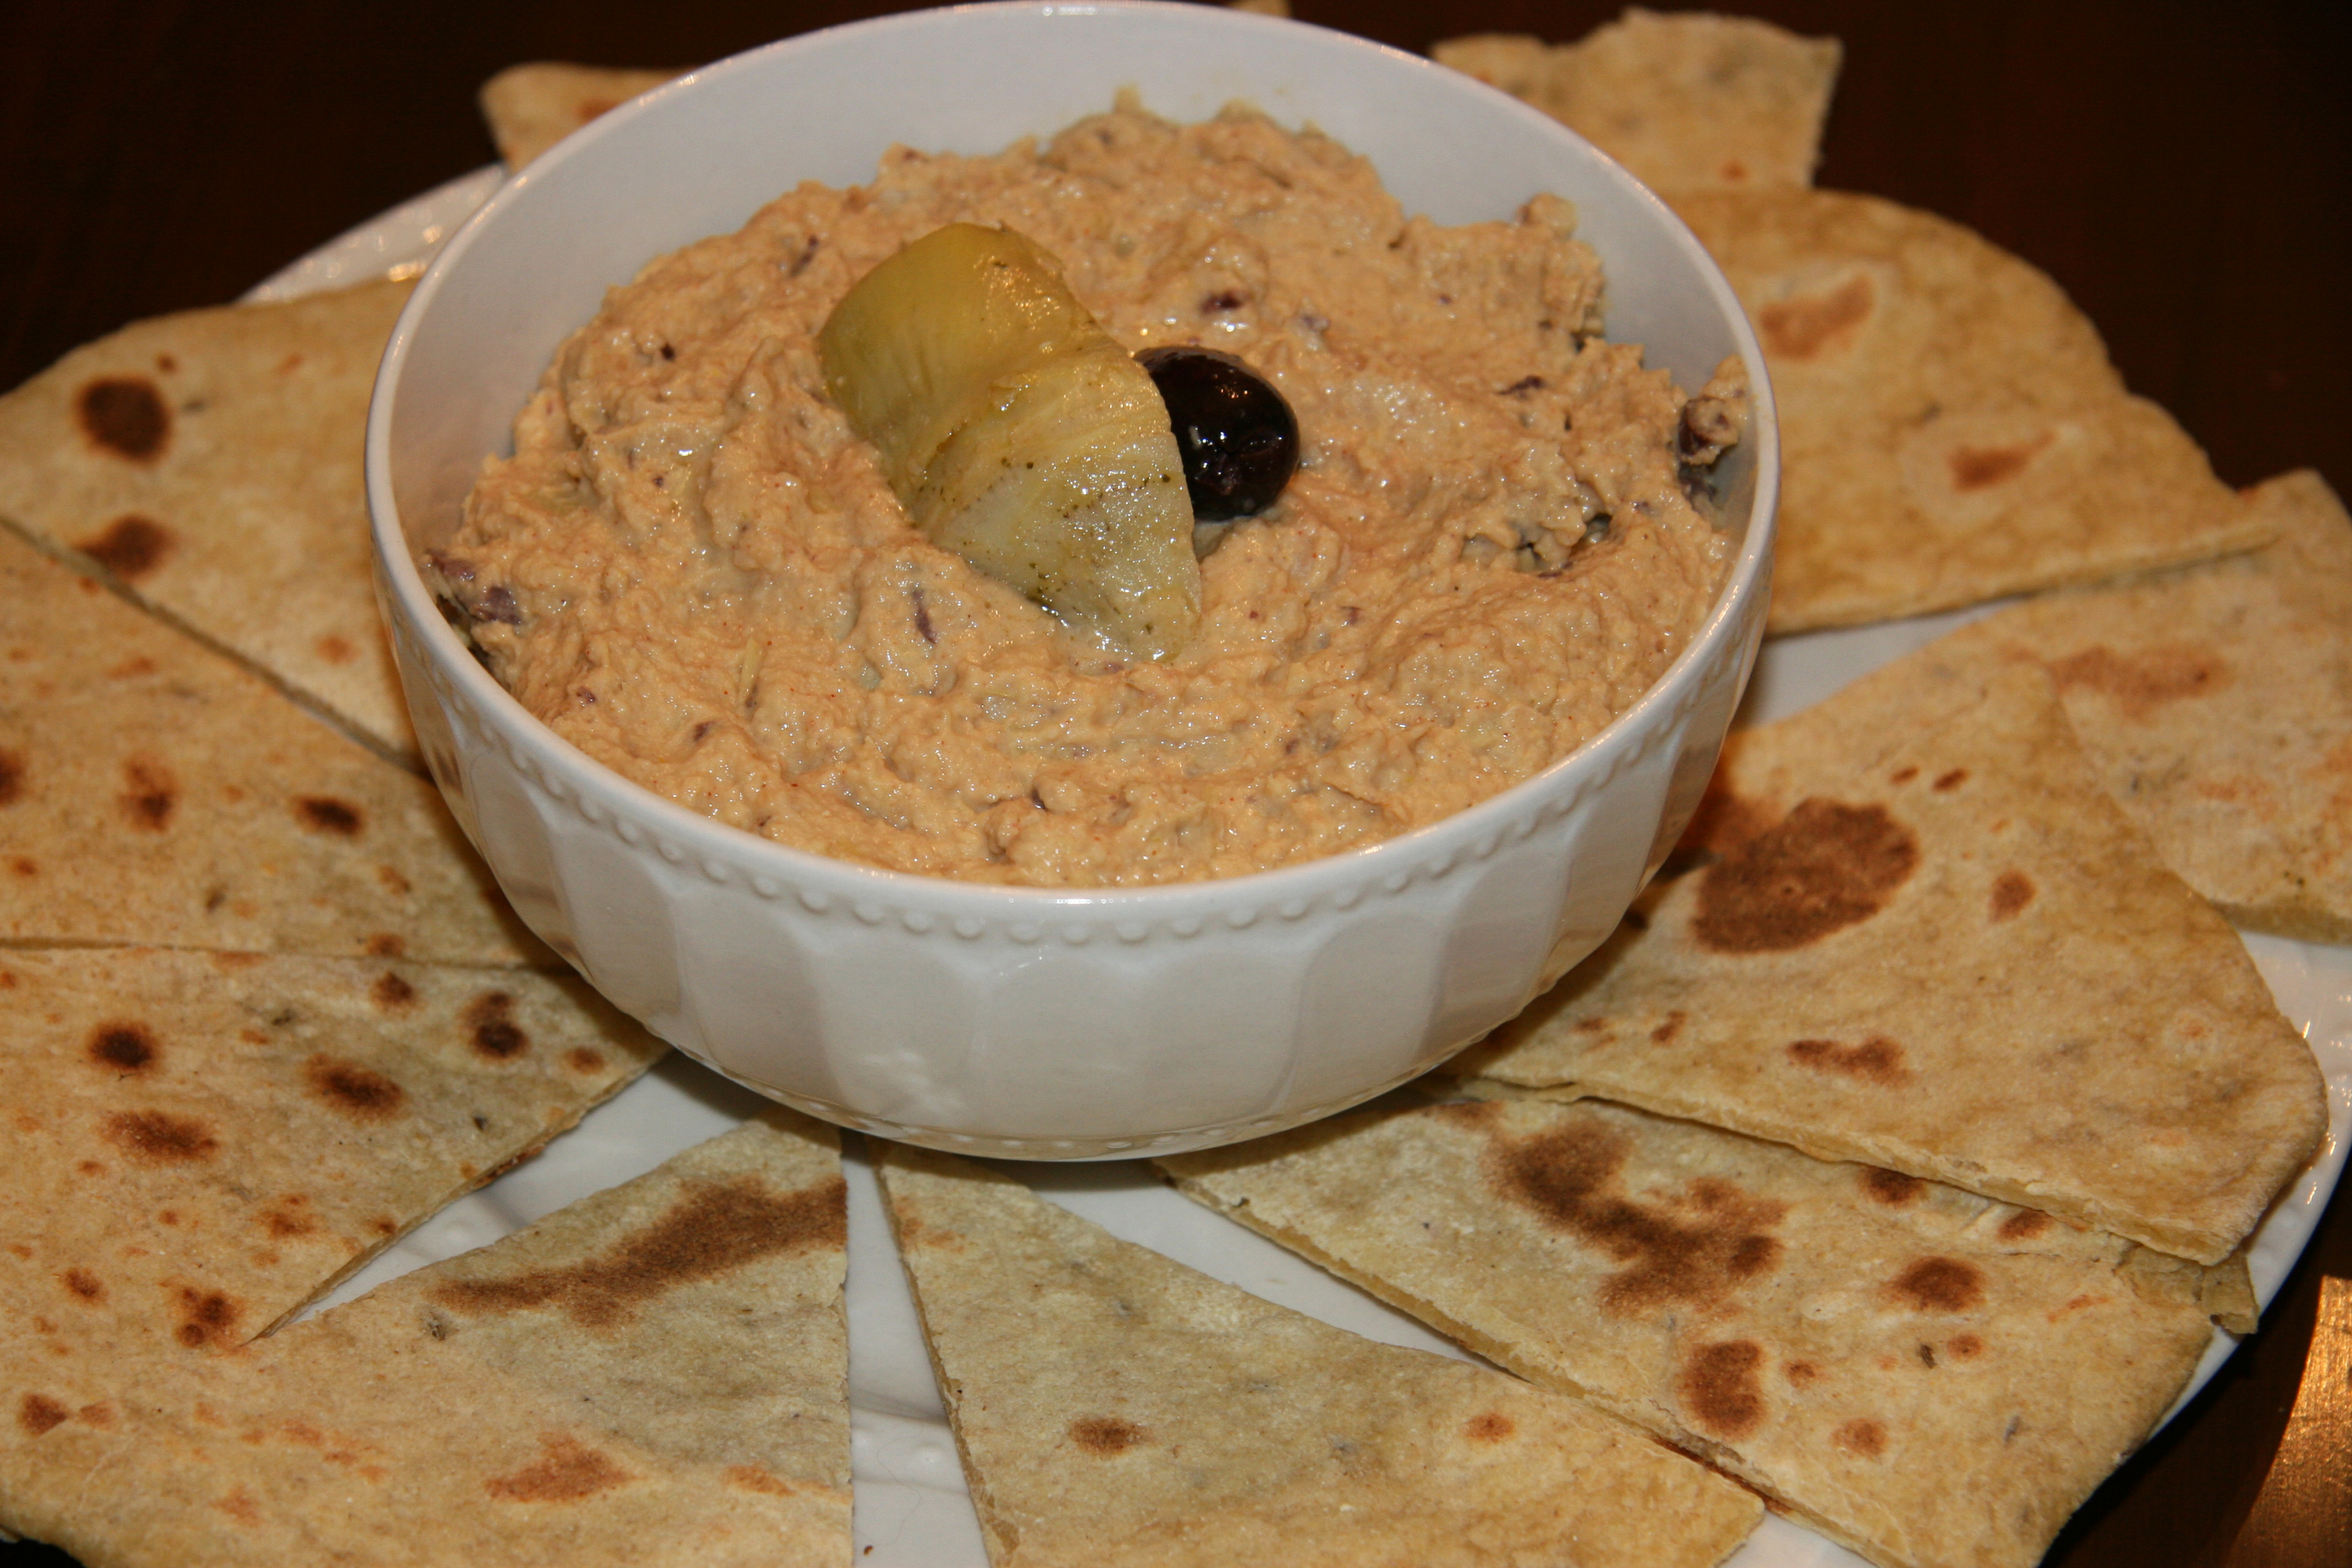 Roasted Red Pepper and Artichoke Hummus